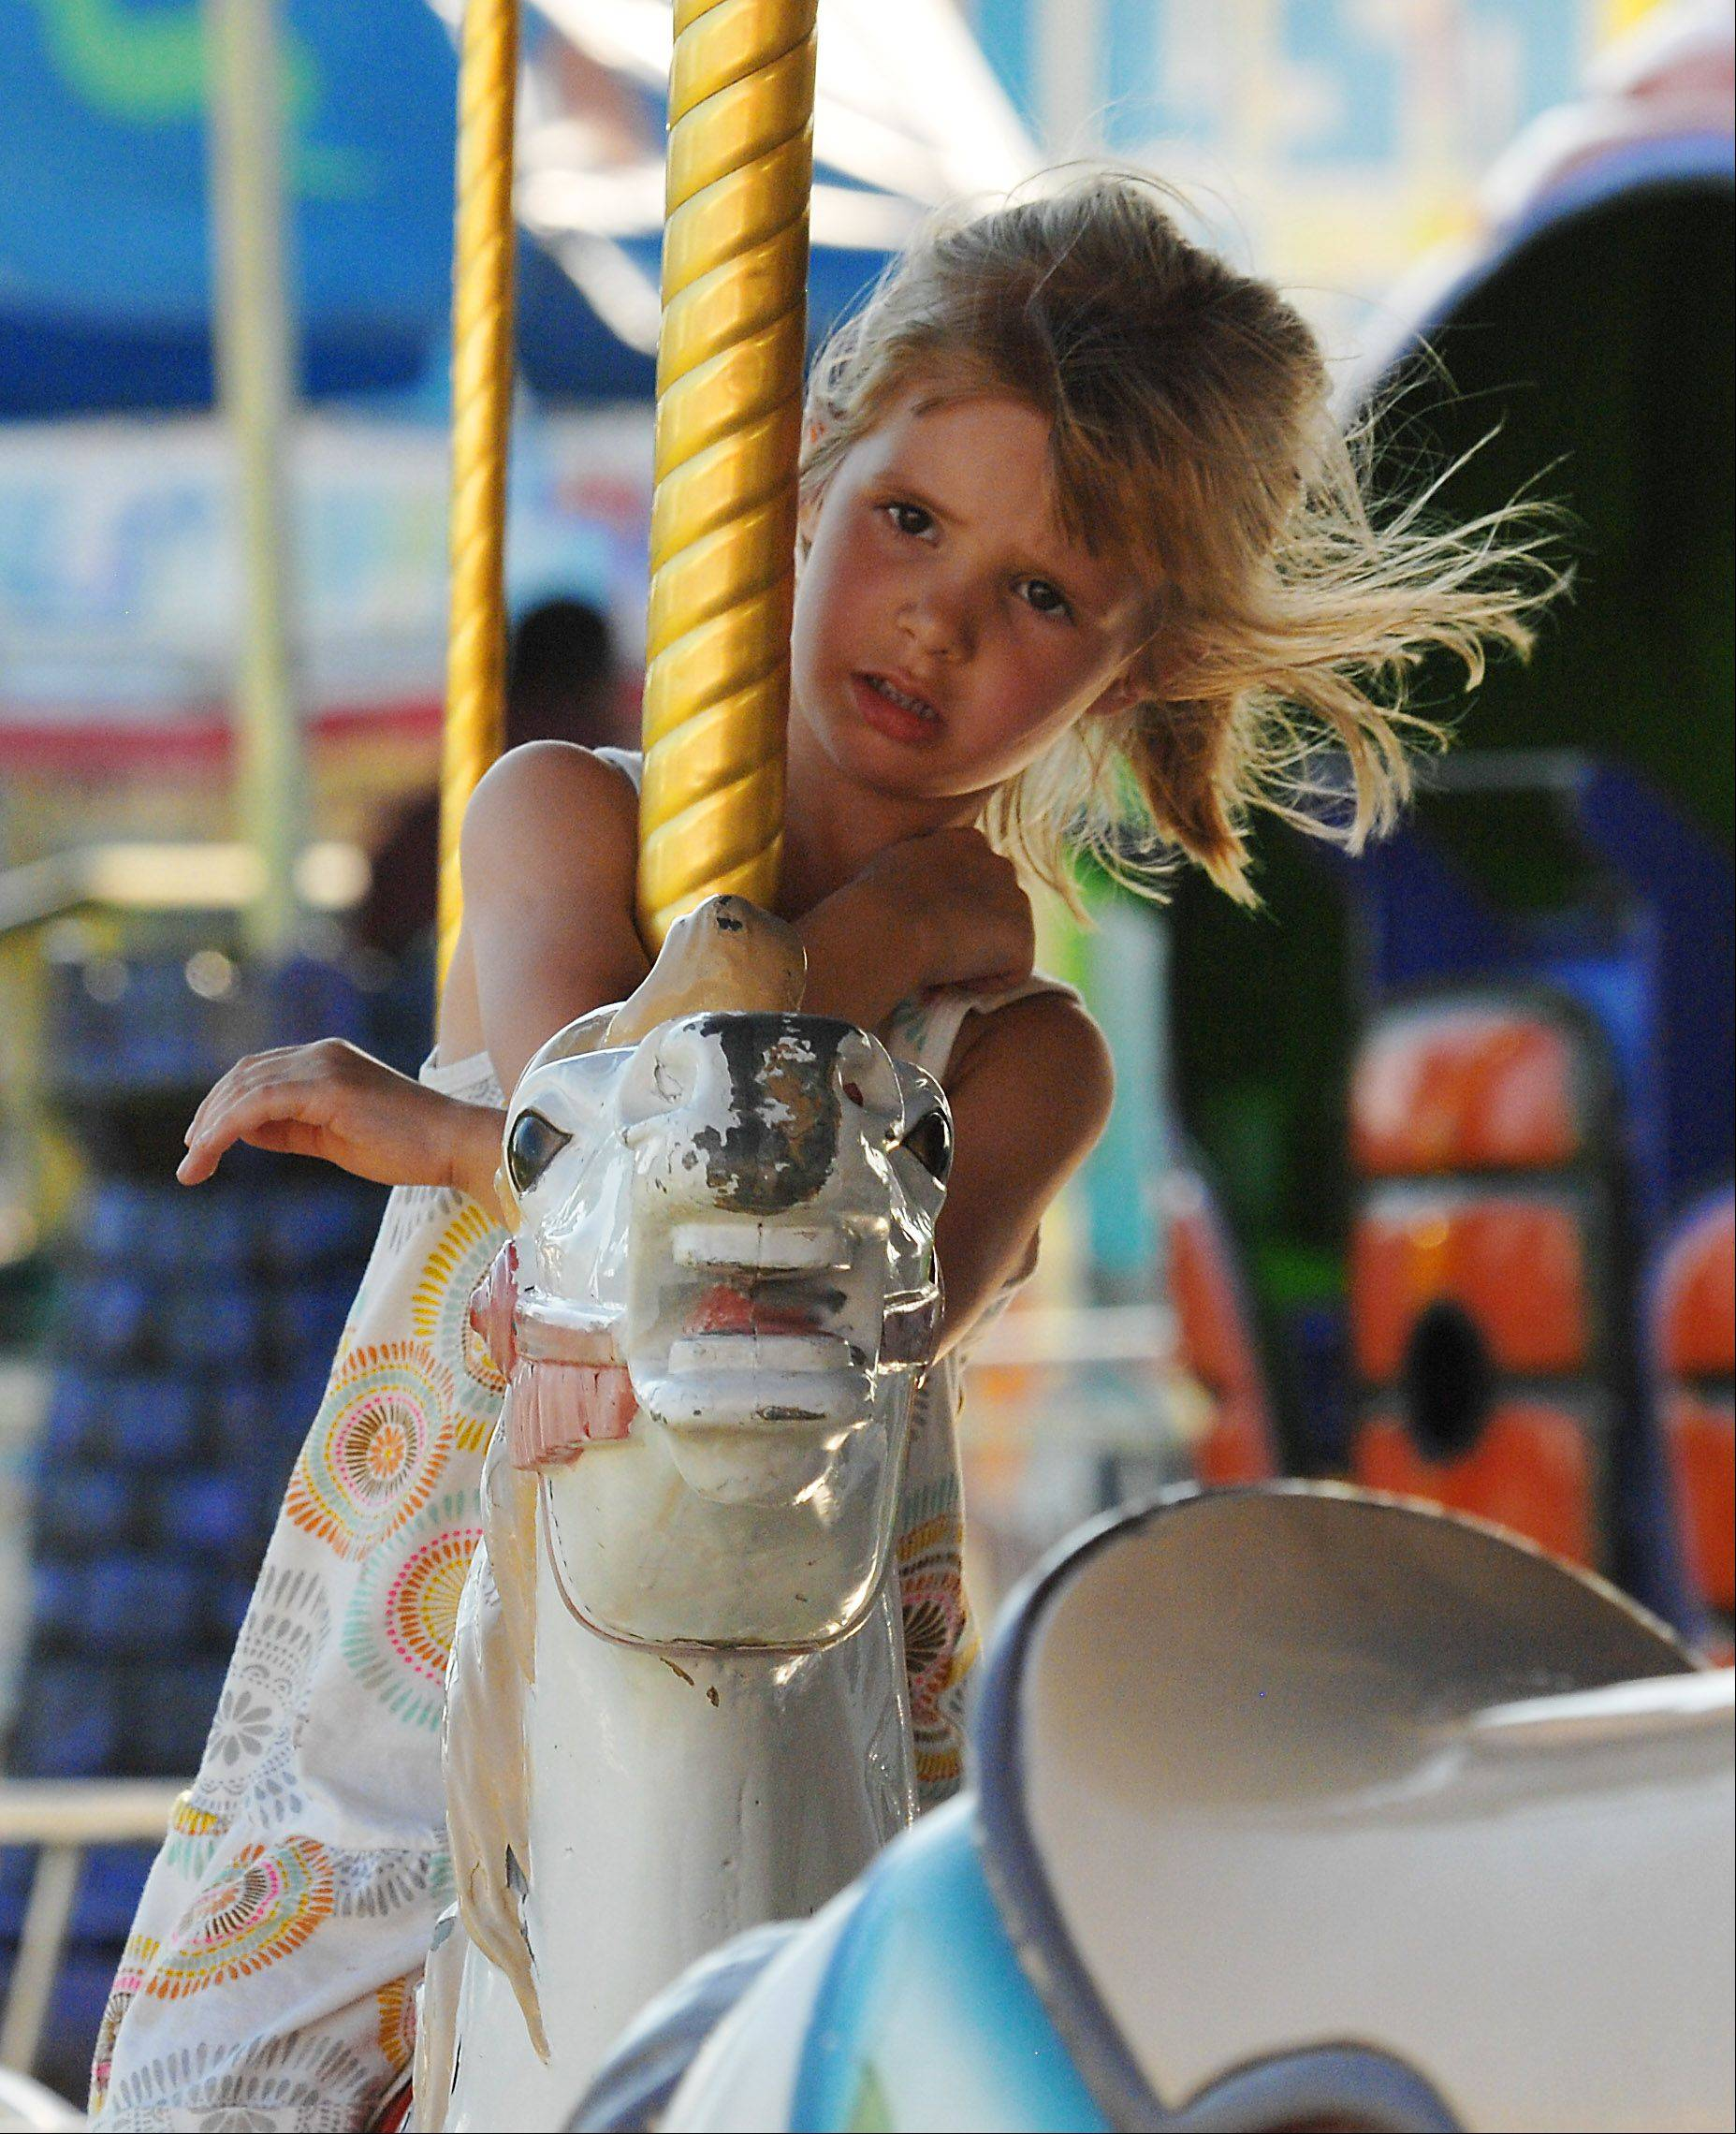 Reagan Malone of Elk Grove Village holds on for dear life as she rides the merry-go-round at last year's Rotaryfest in Elk Grove Village.